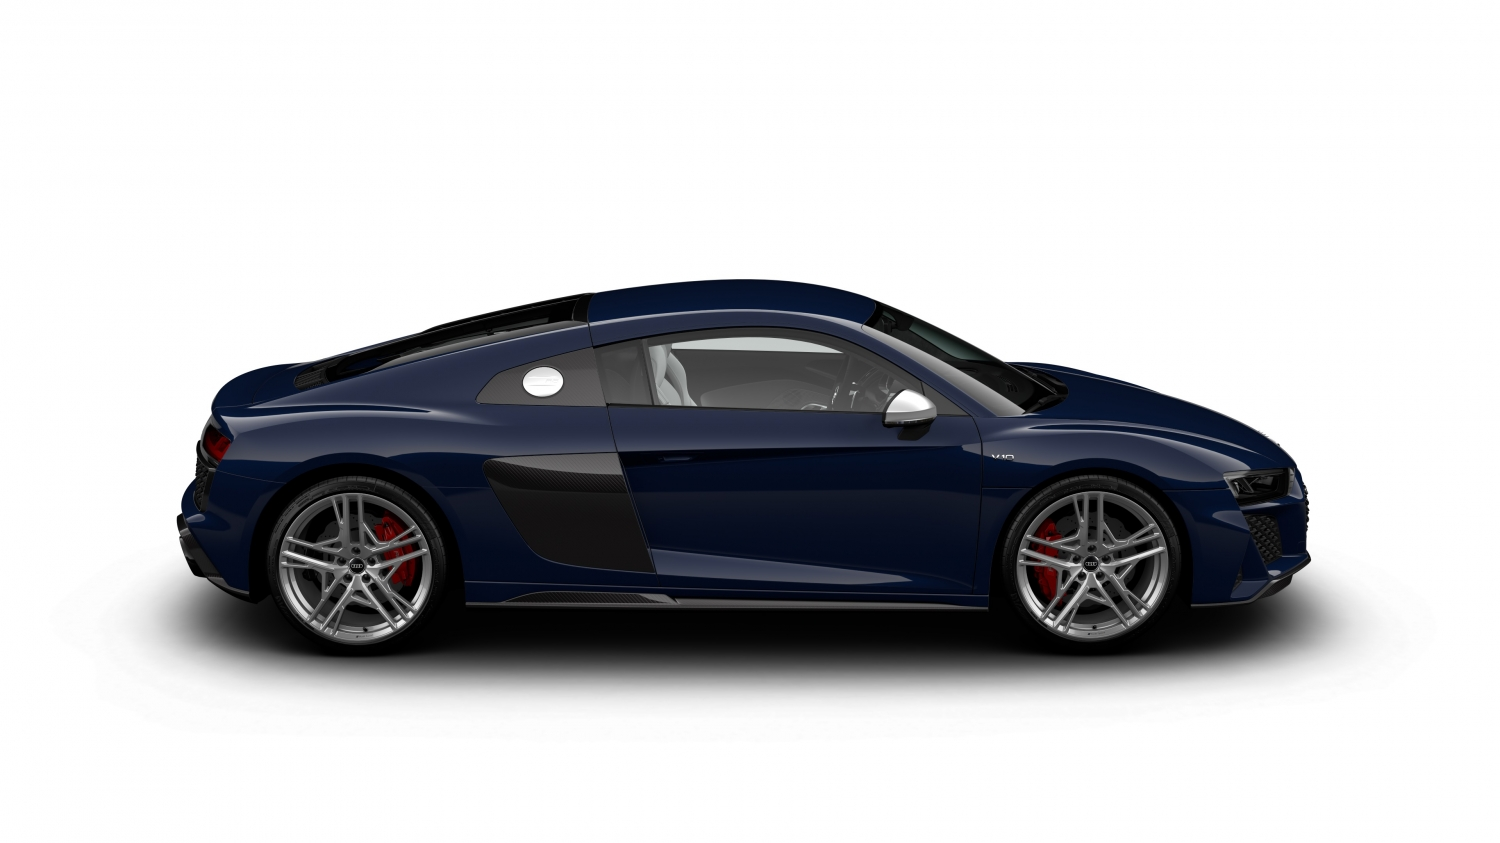 Small-2020-Audi-R8-V10-quattro---Mugello-Blue-7464